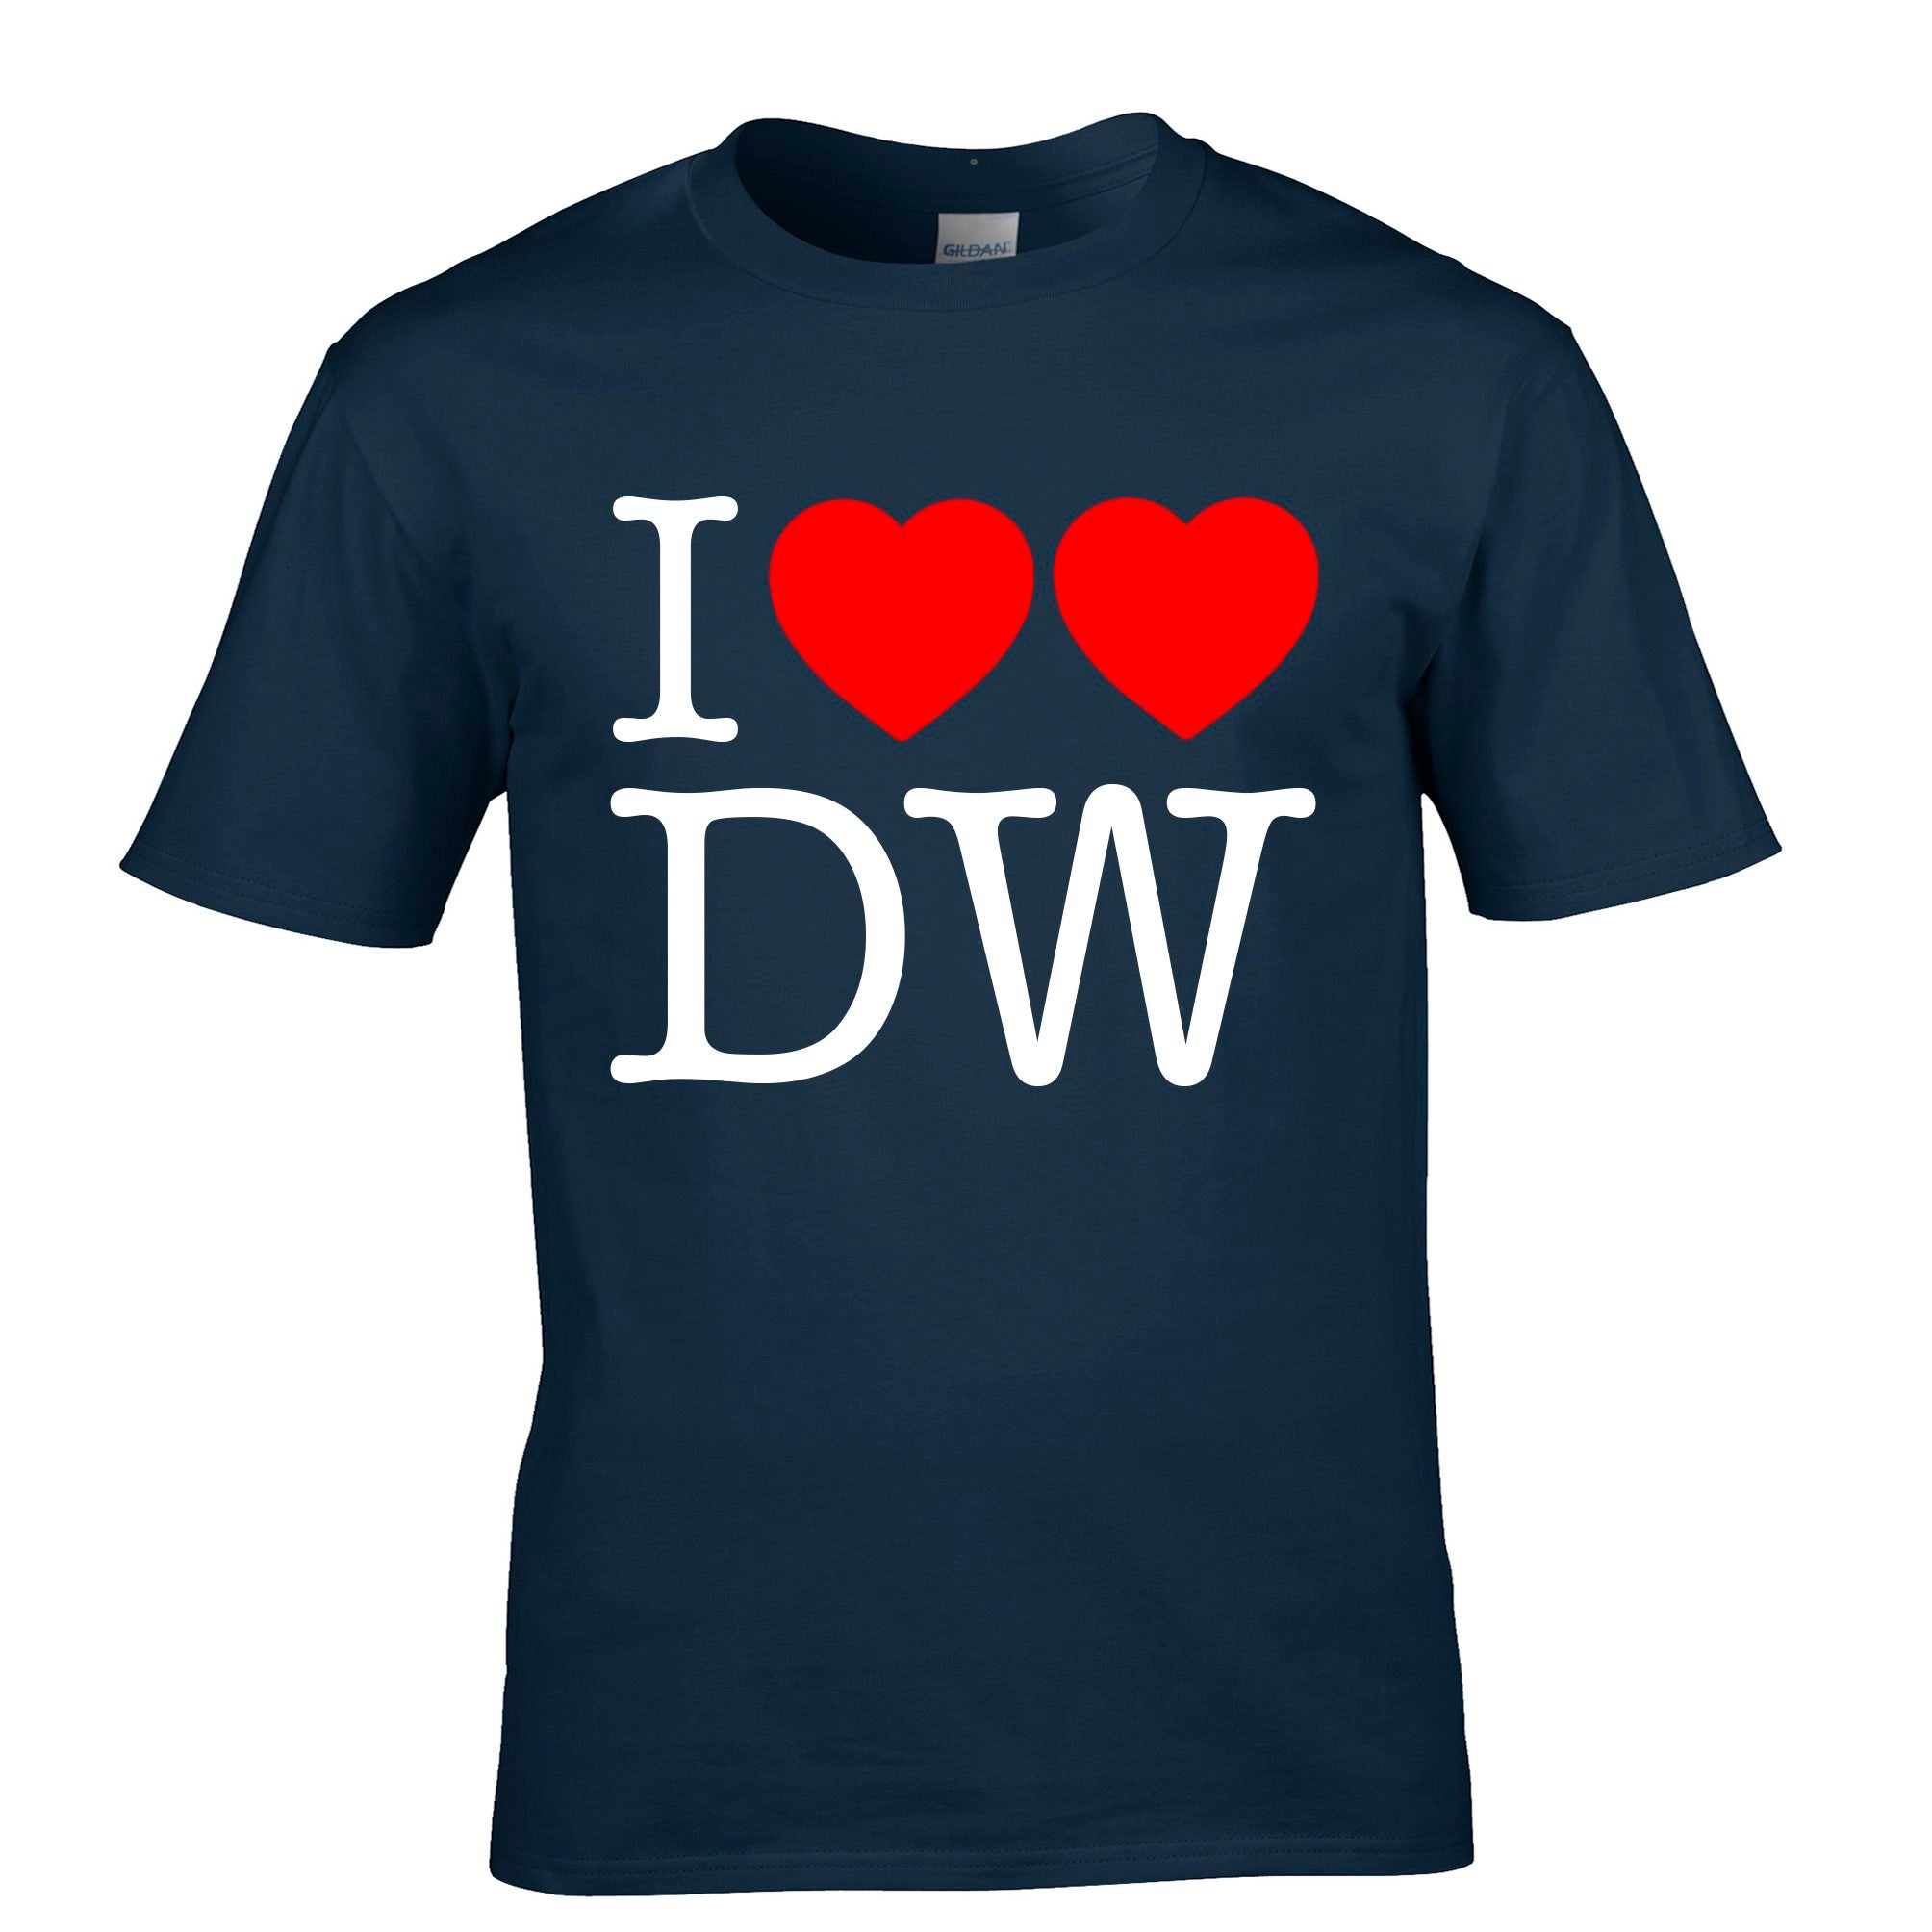 Mens I Love DW T Shirt Two Hearts Tee